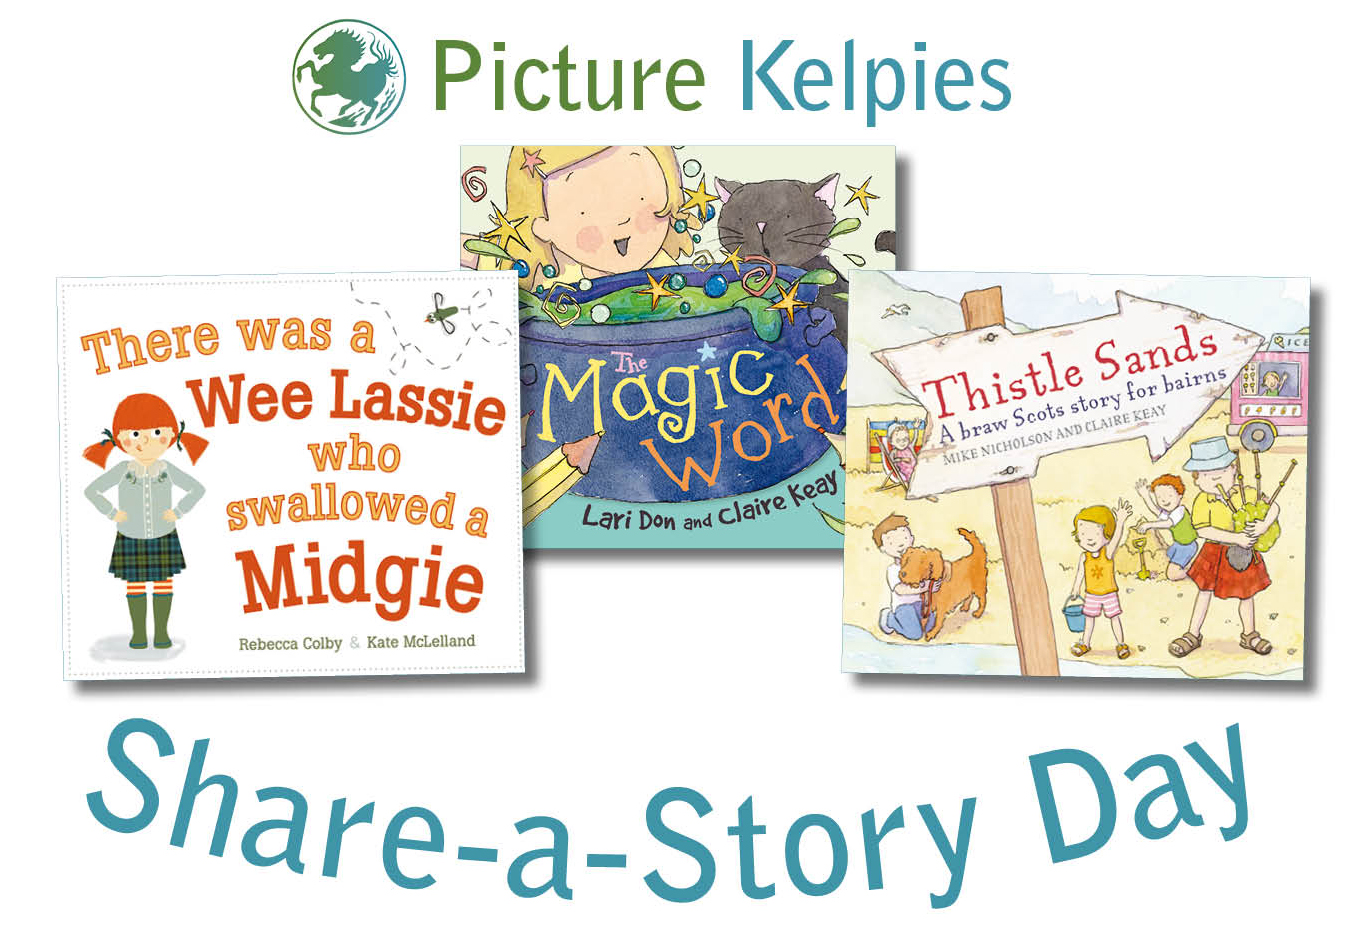 Picture Kelpies Share-a-Story Day logo